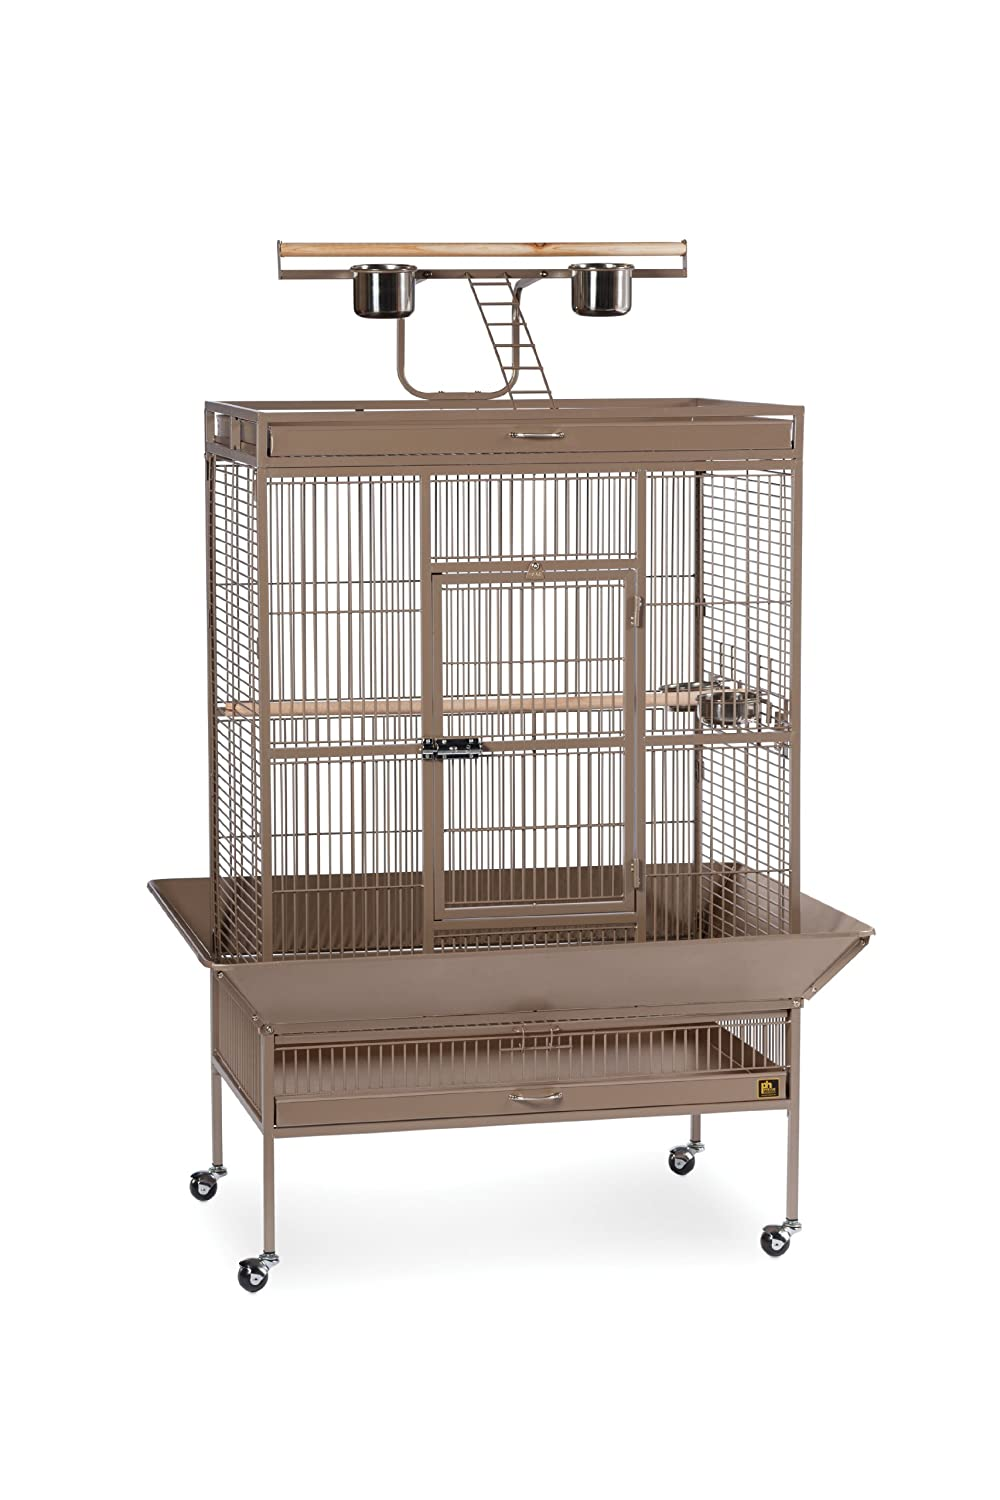 36-Inch by 24-Inch by 66-Inch Prevue Pet Products Wrought Iron Select Bird Cage, 36-Inch by 24-Inch by 66-Inch, Pewter